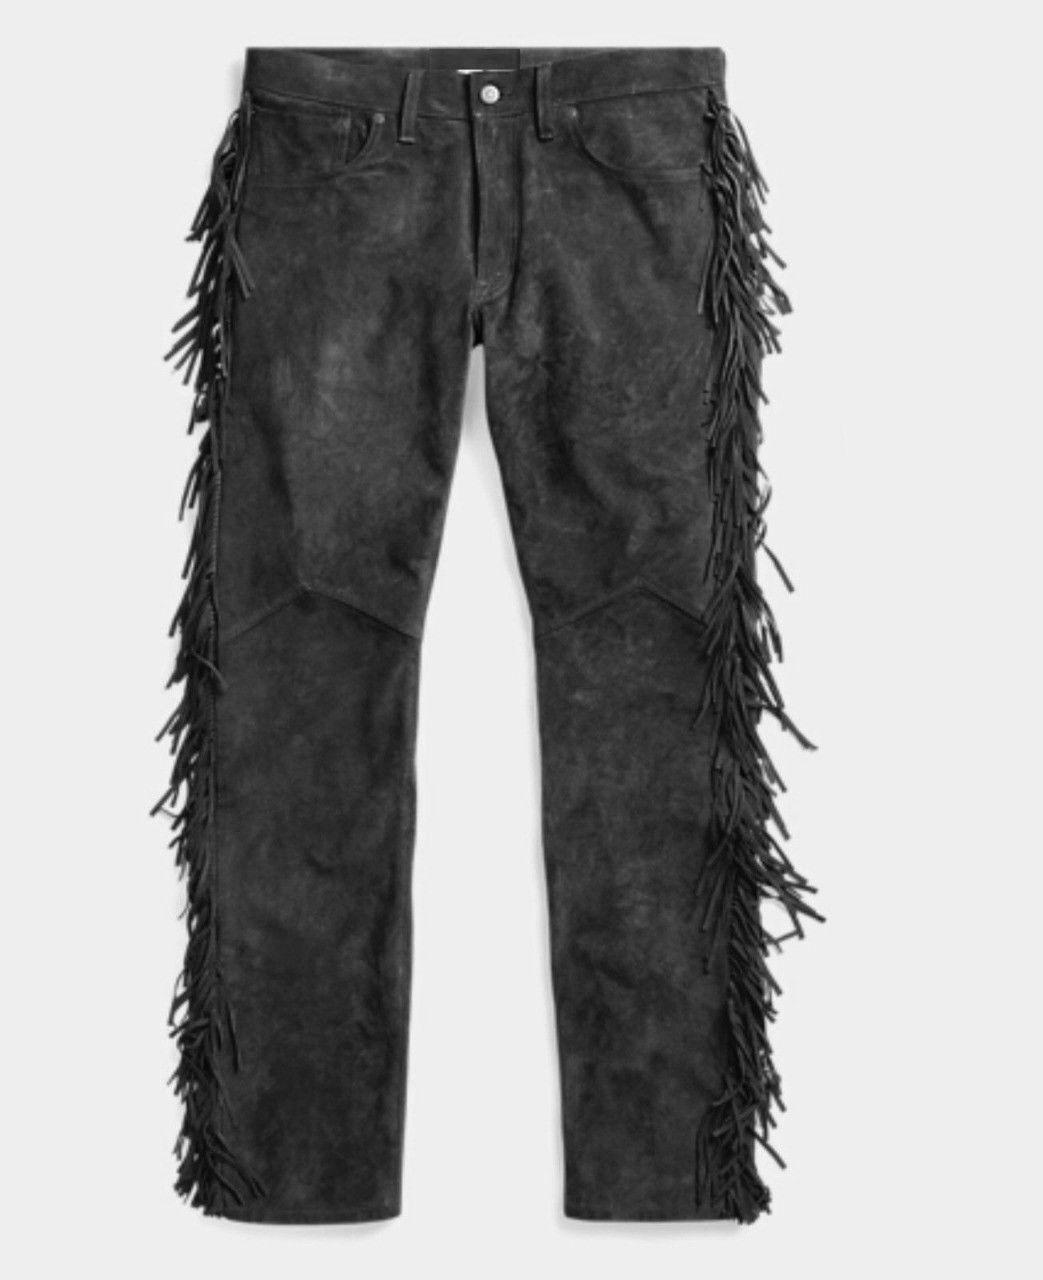 Men's New Native American Buckskin Smoky Goat Suede Leather Fringes Pants WP1B